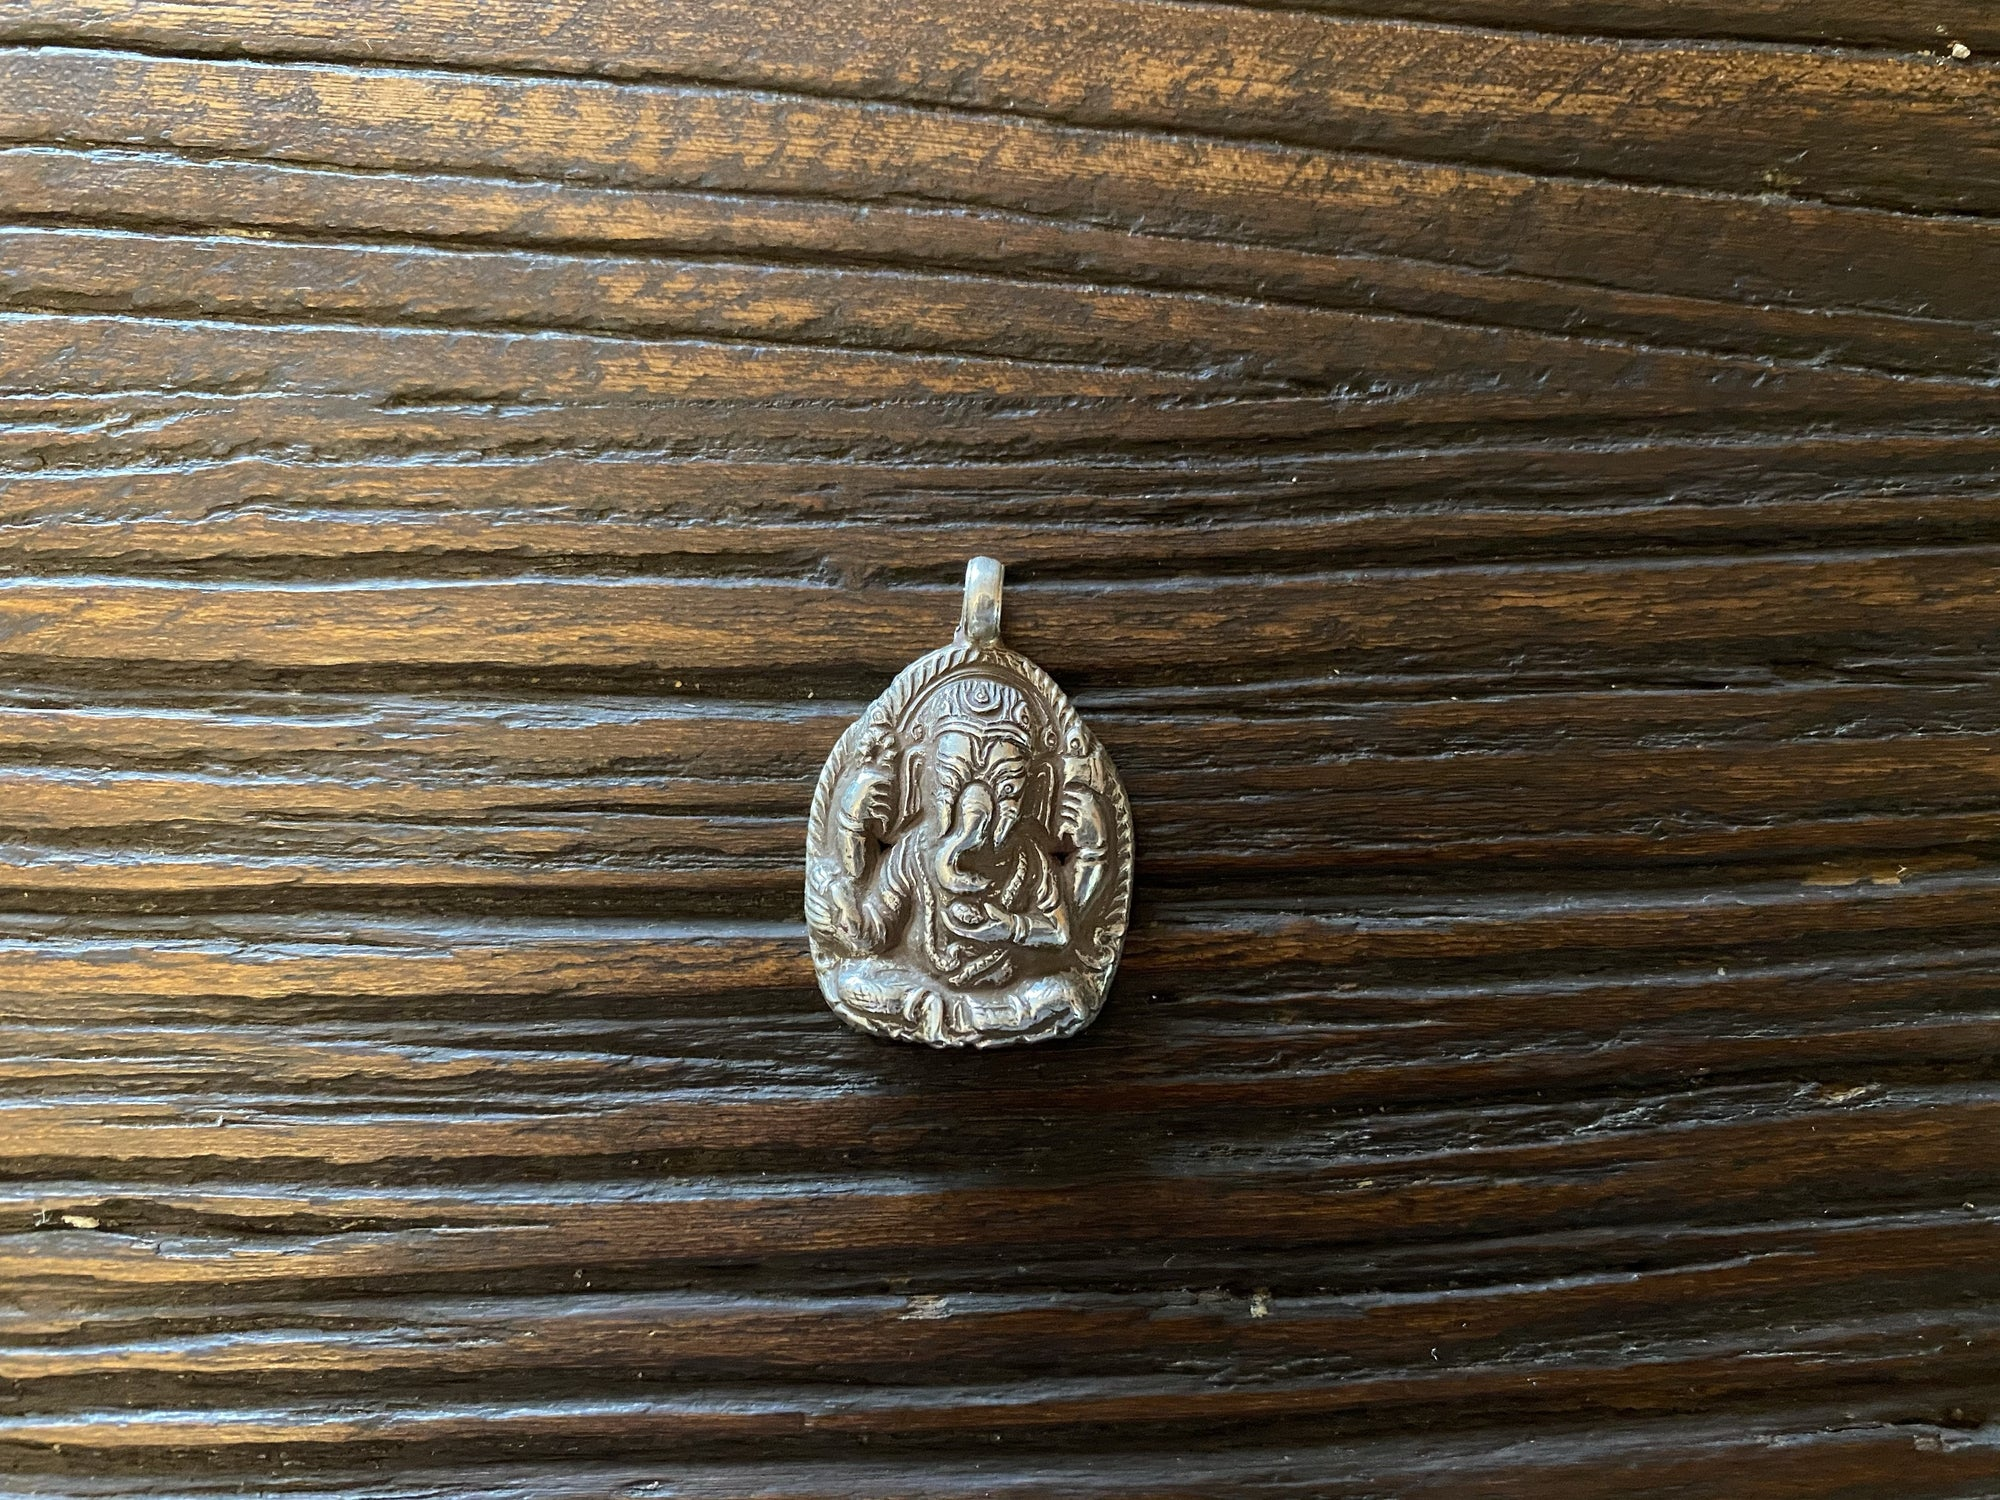 Hollow cast, high relief silver pendant featuring Lord Ganesha. The back of the pendant holds the Buddhist mantra Om Mani Padme Hum.  Sterling silver, from Nepal